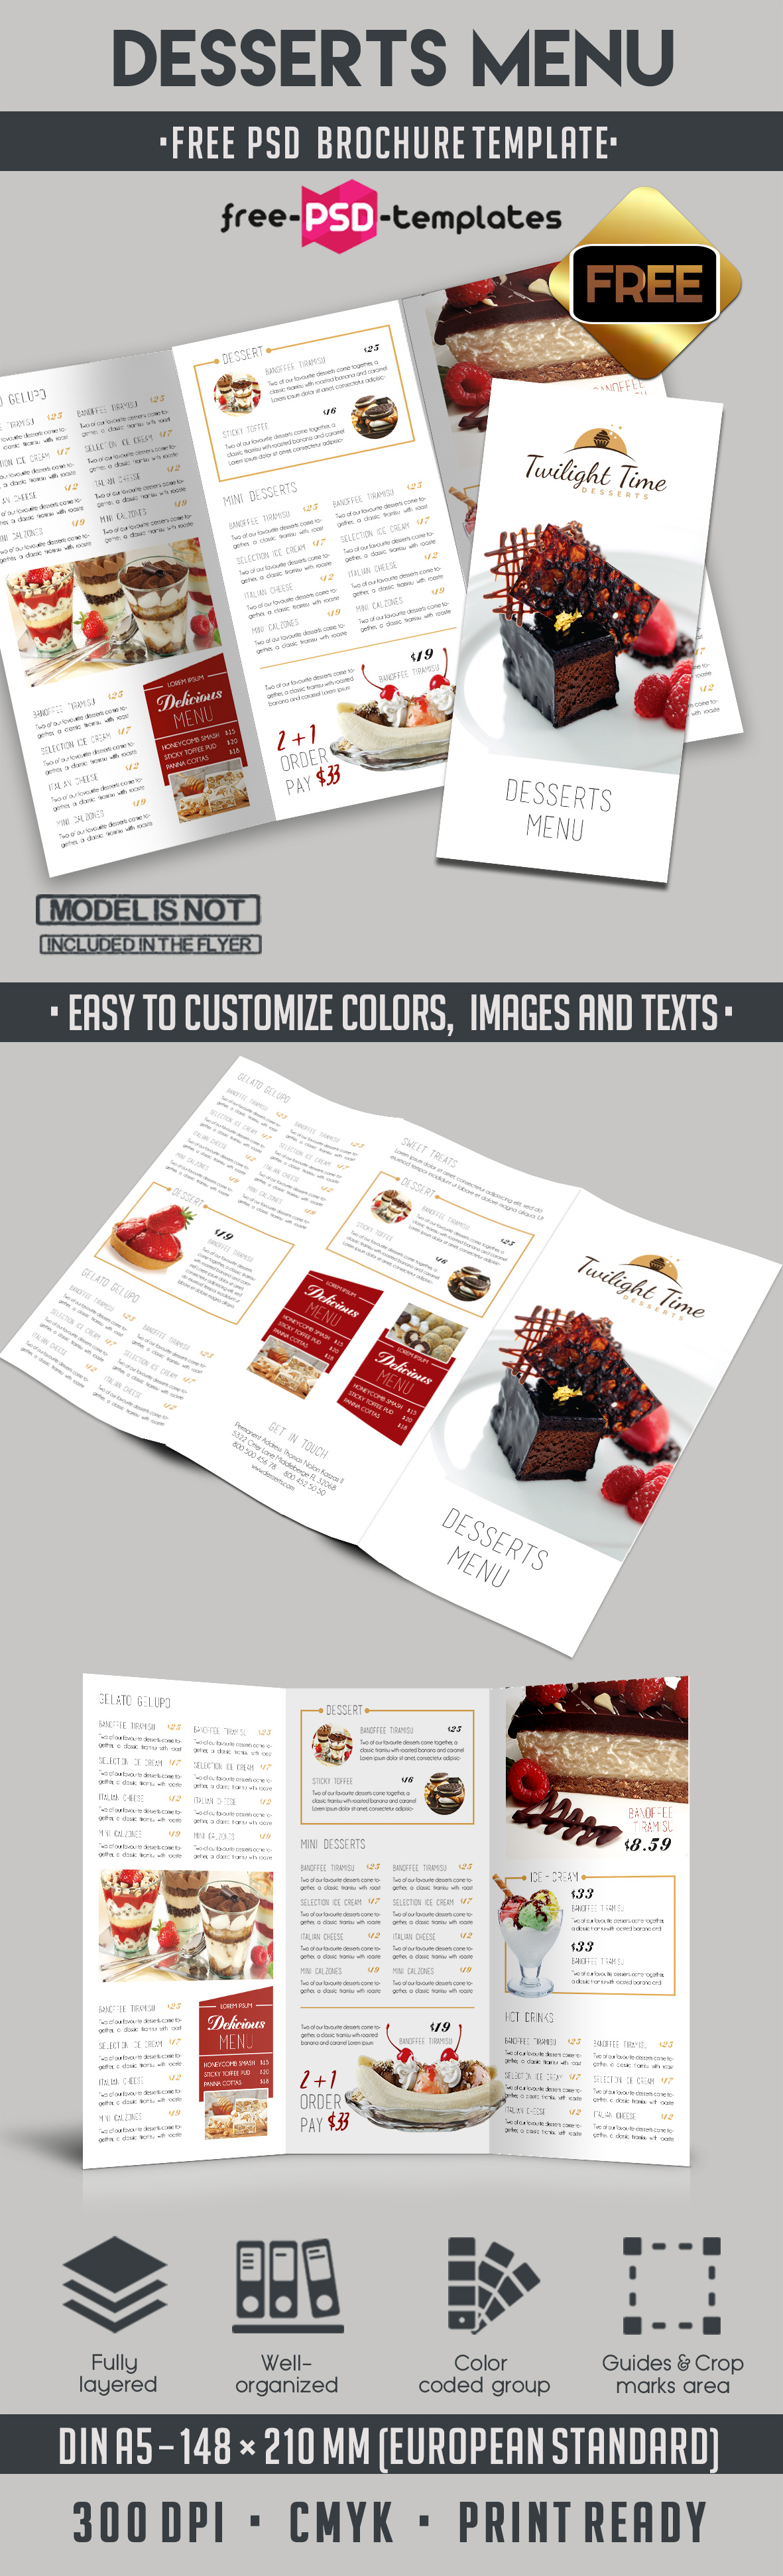 Desserts menu tri fold brochure template free psd templates for Free psd brochure template